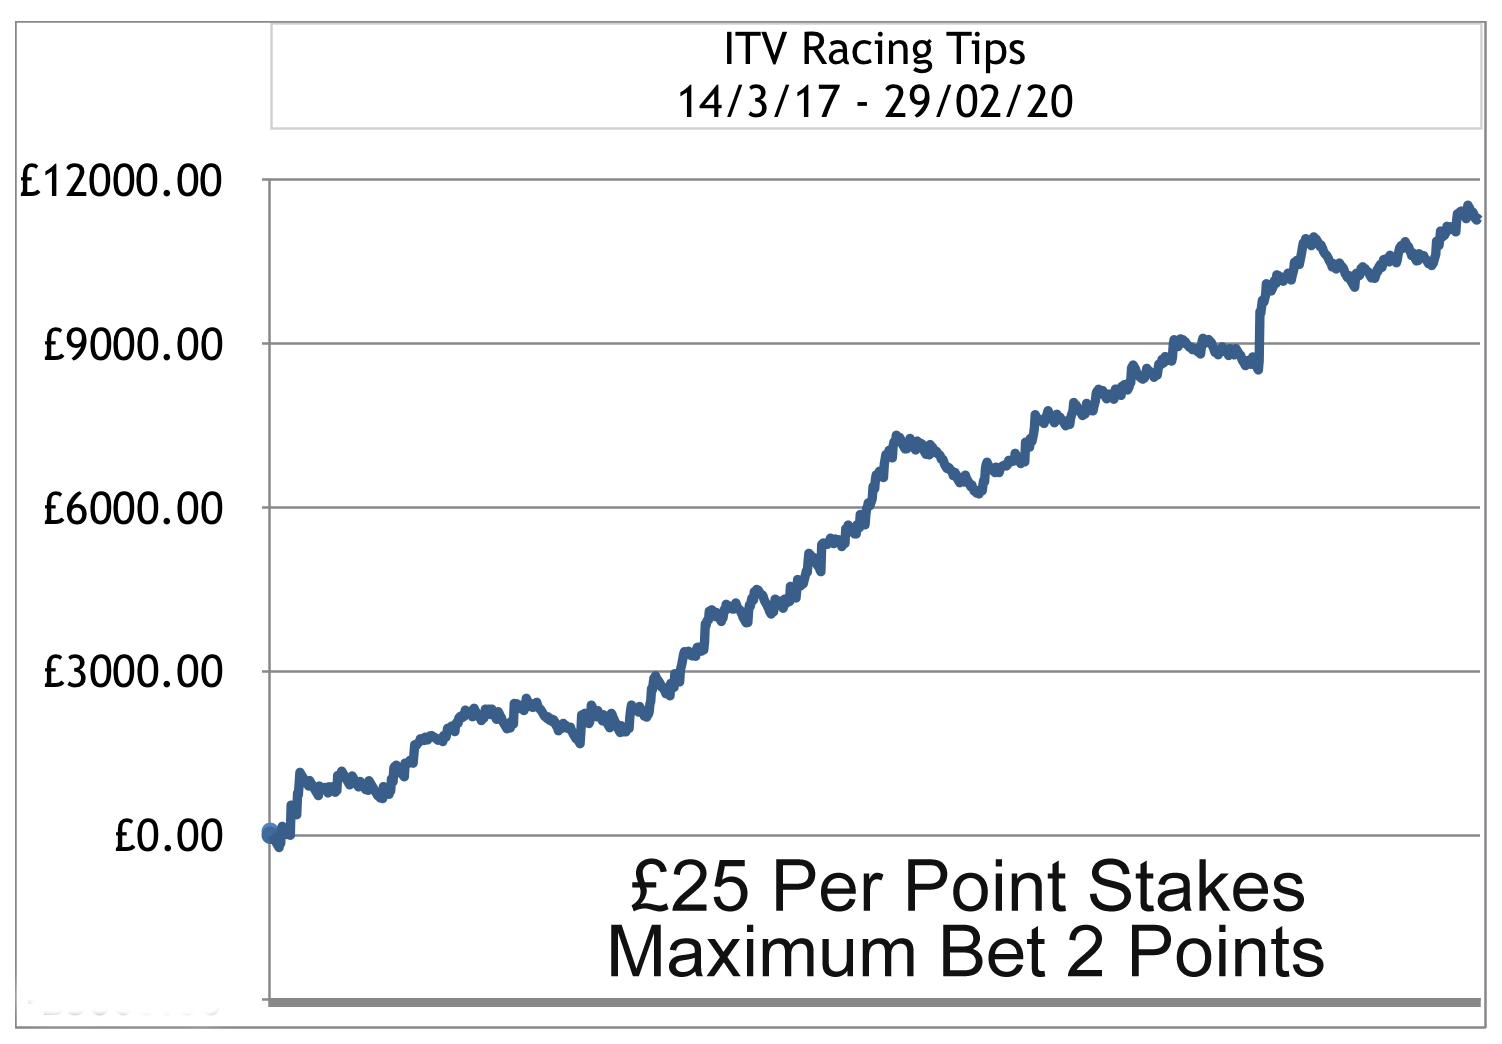 ITV Racing Profit Chart to February 29 2020